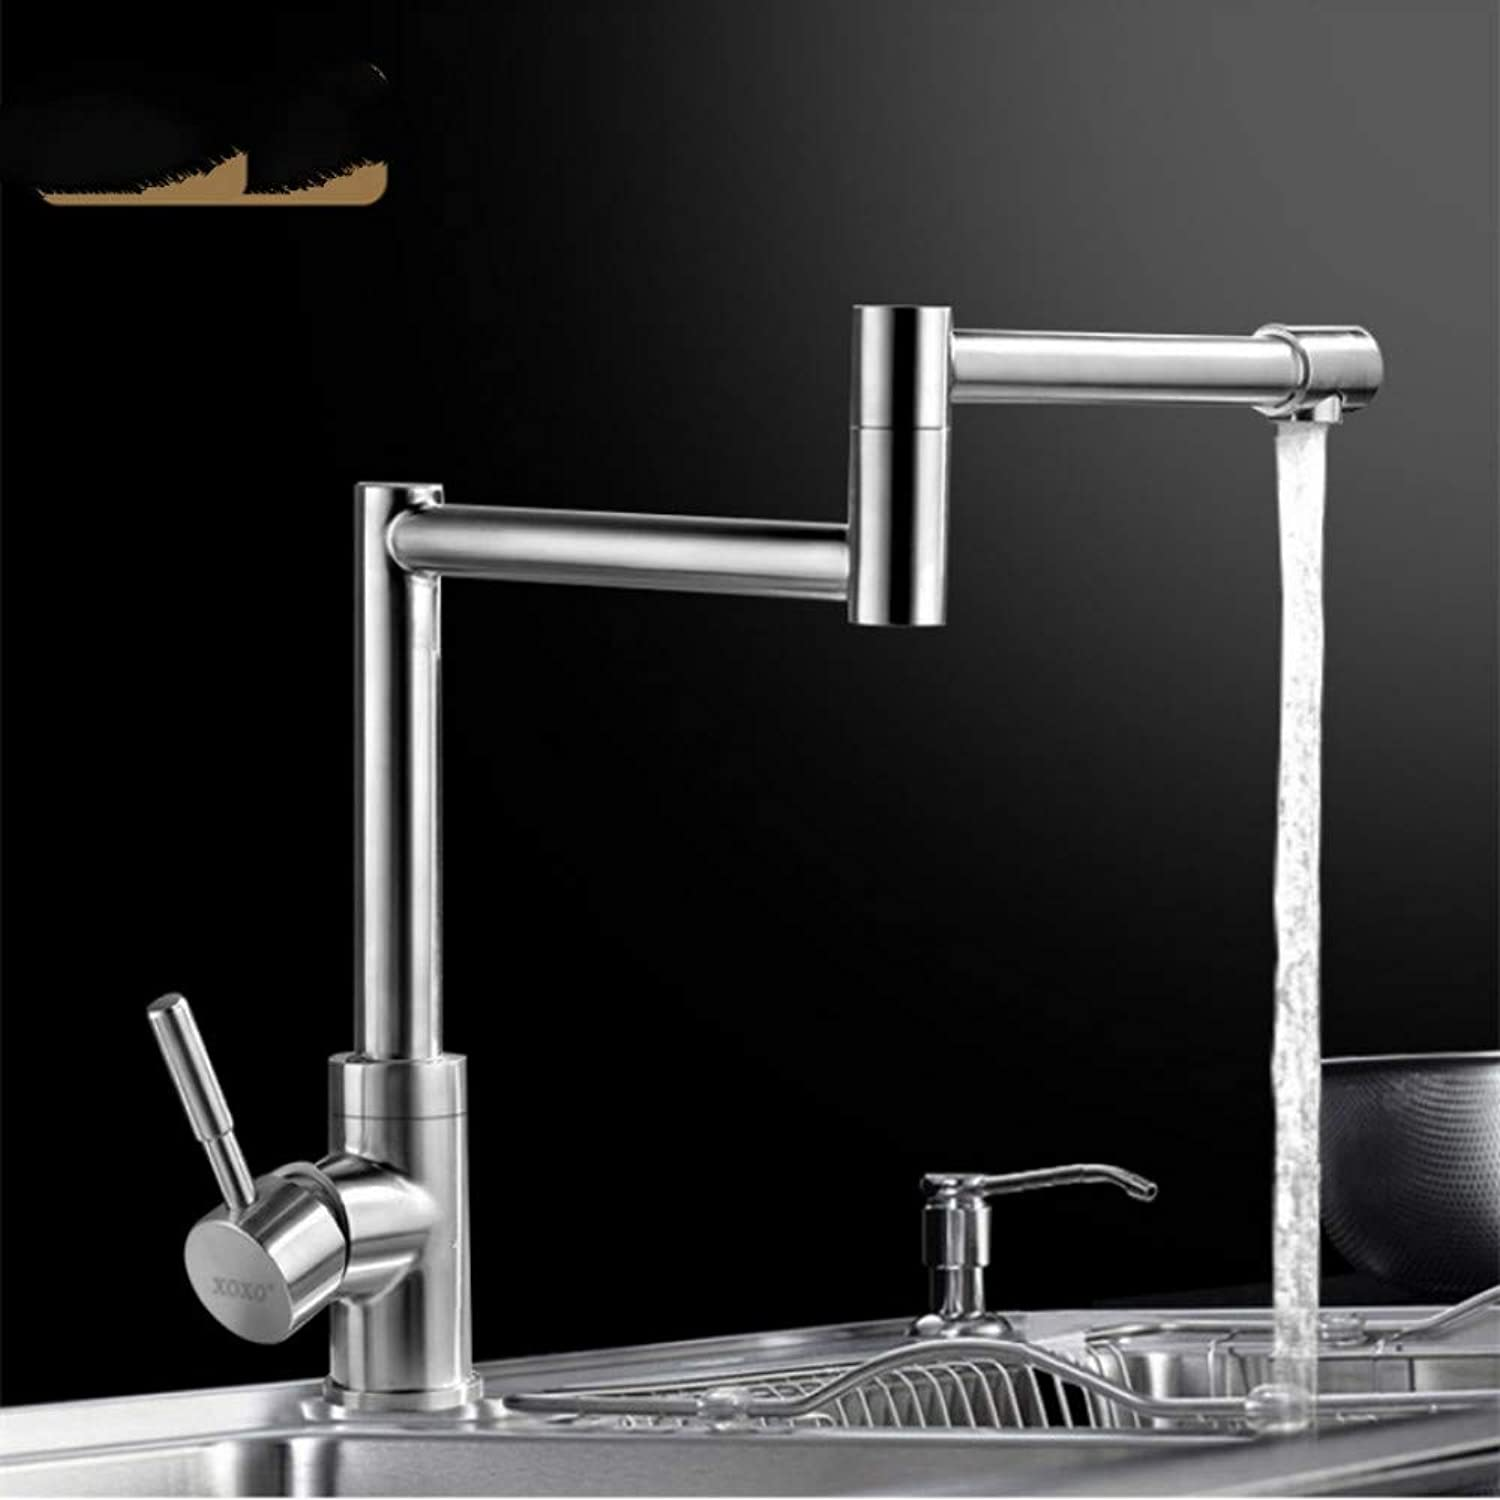 Lddpl Tap 304 Stainless Steel Swivel Head Dish Washing Basin Faucet Hot and Cold Wash Face Basin Shampoo Puckering